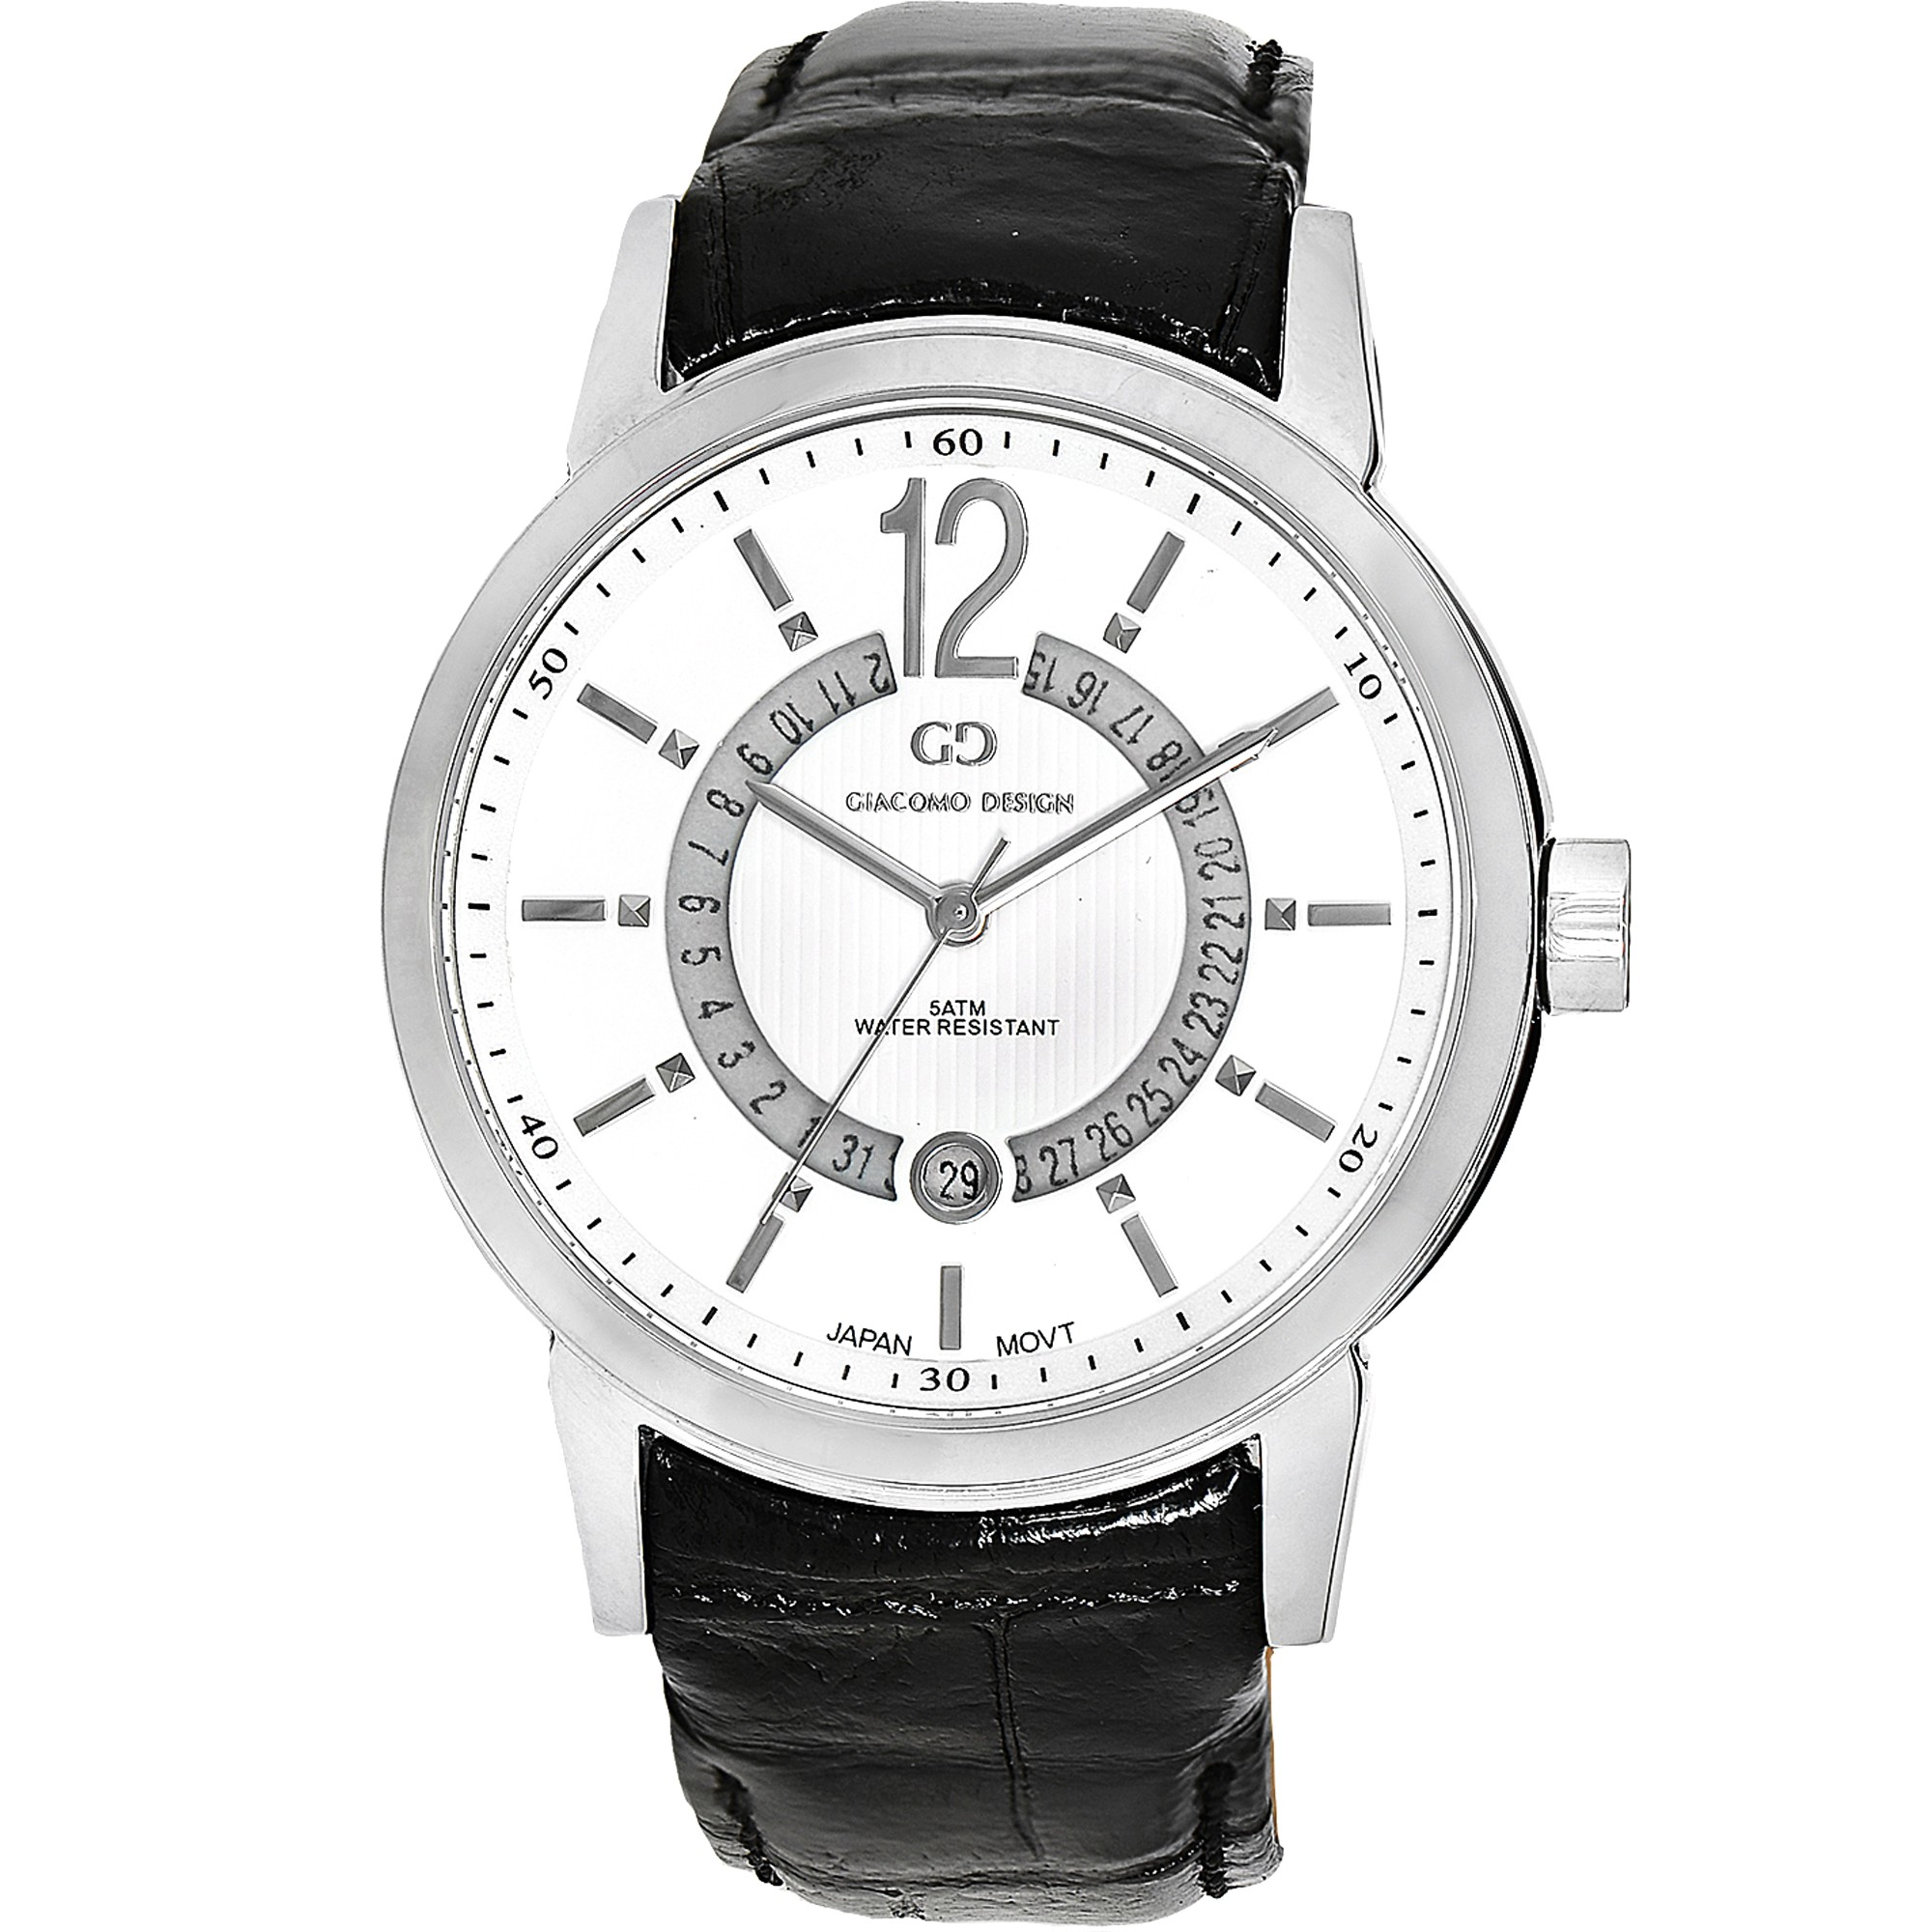 whiteblack giacomo calendario white leather design black watch watches